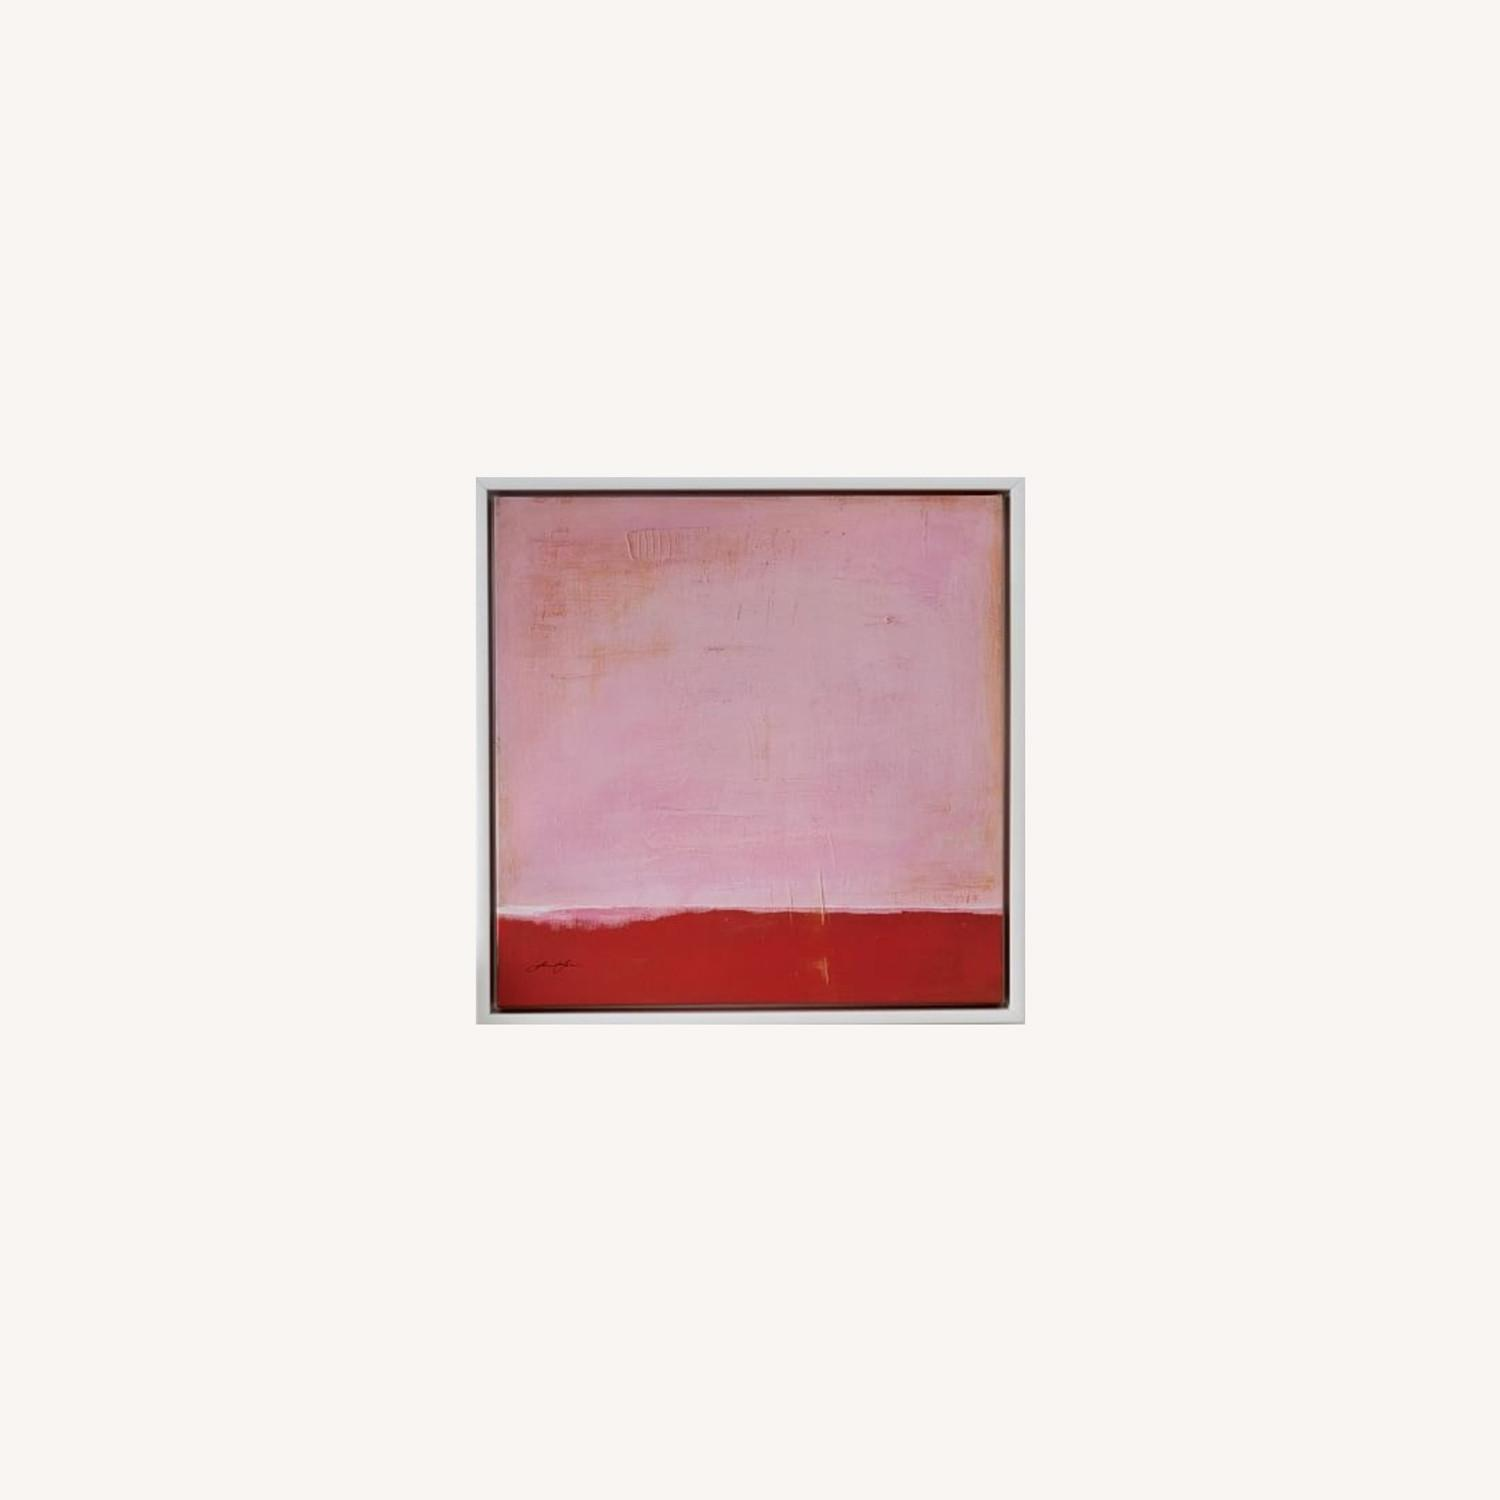 West Elm Red on Pink by Laura Gunn 24 x 24 - image-0